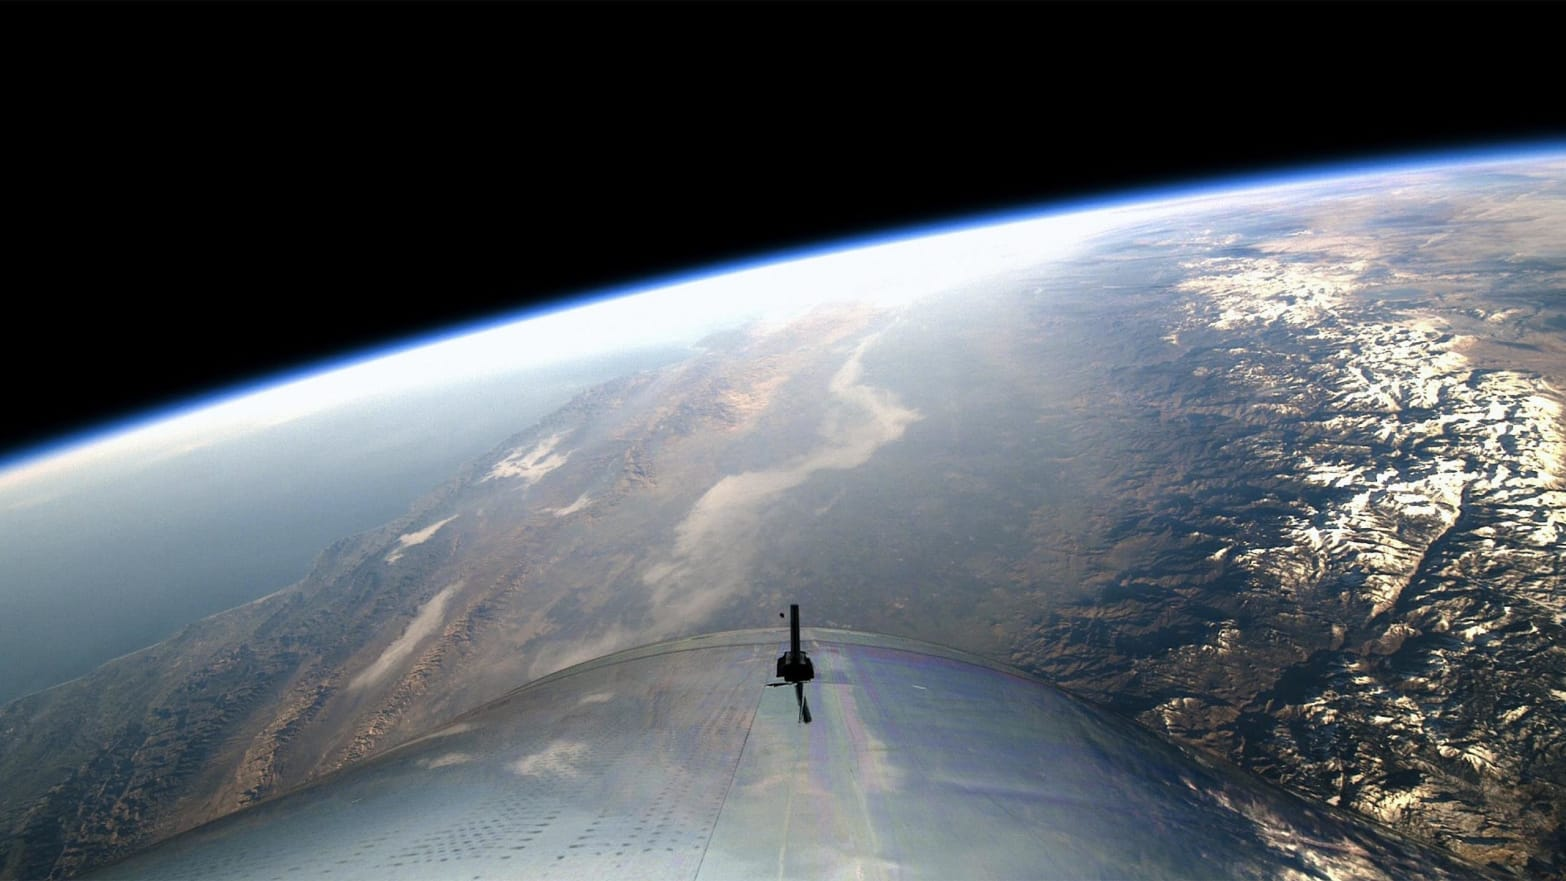 image of spaceshiptwo floating over earth virgin galactic richard branson space vacation elon musk big fucking rocket accident death